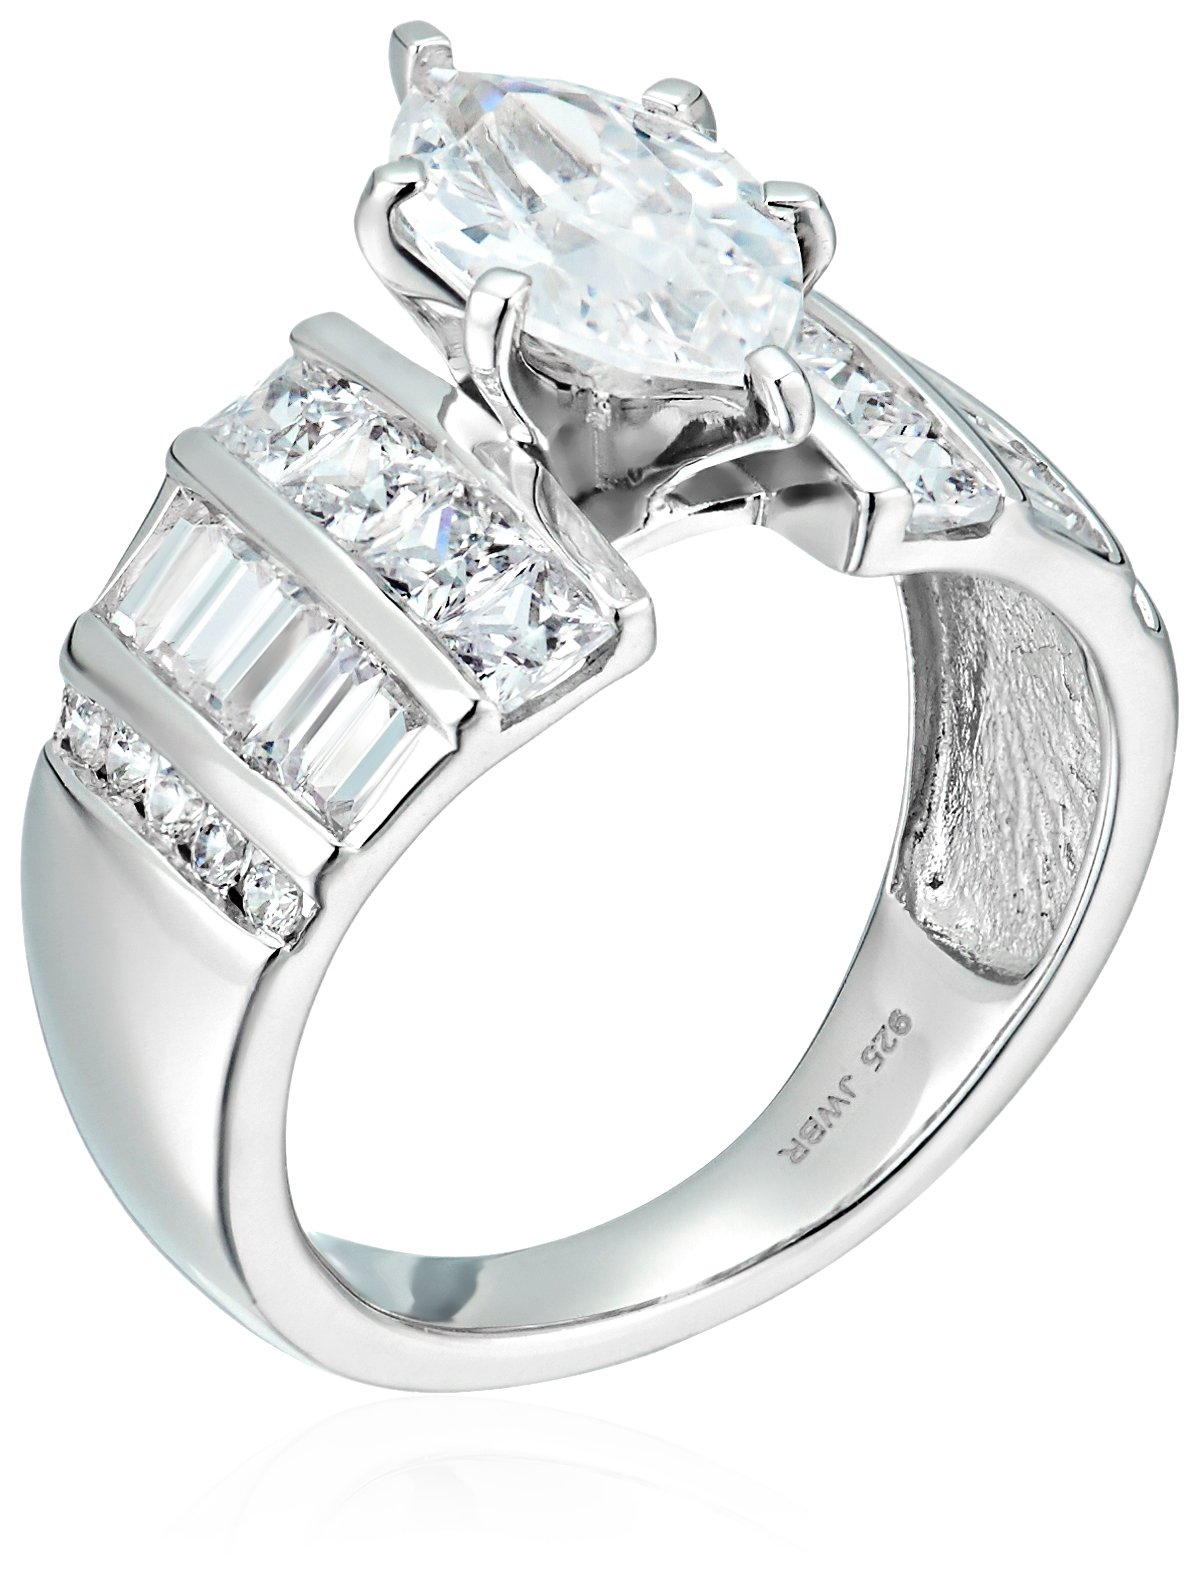 Sterling Silver Cubic Zirconia Marquise Cut Engagement Ring, Size 8 by Amazon Collection (Image #2)